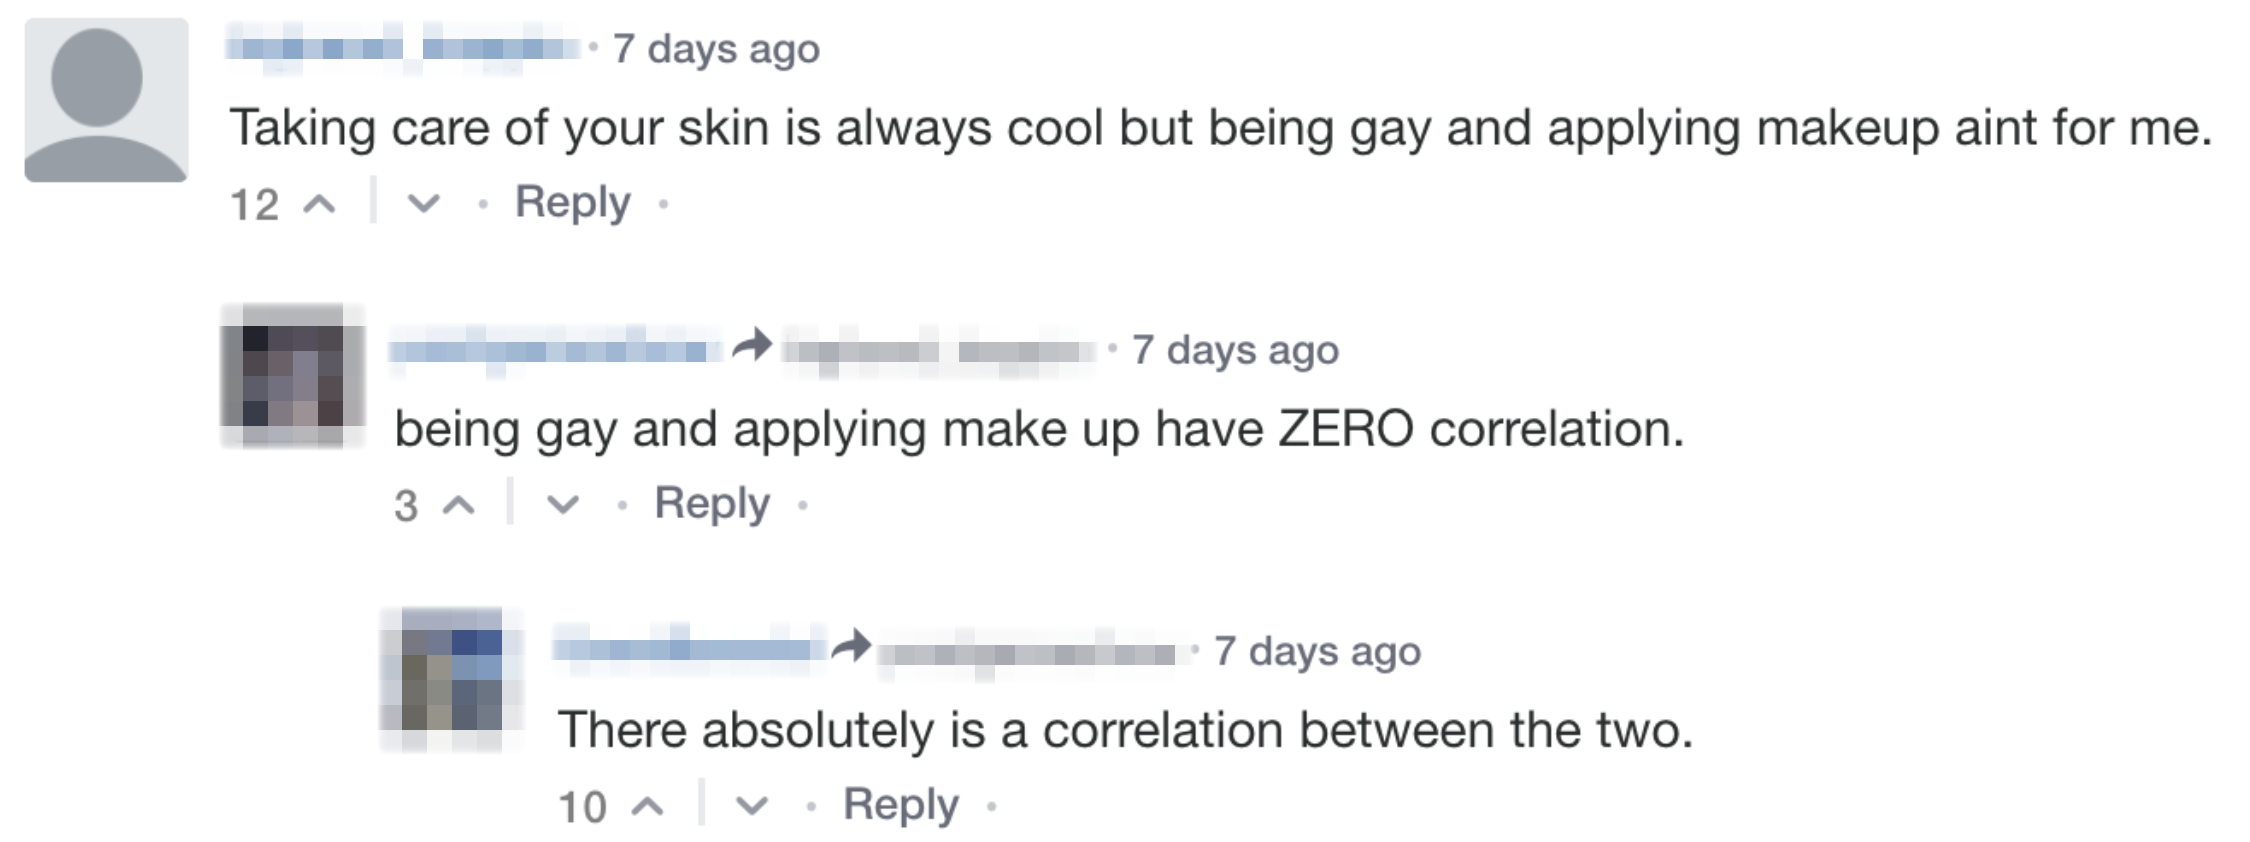 Comment: Taking care of your skin is always cool but being gay and applying makeup aint for me. Reply 1: being gay and applying make up have ZERO correlation. Reply 2: There absolutely is a correlation between the two.